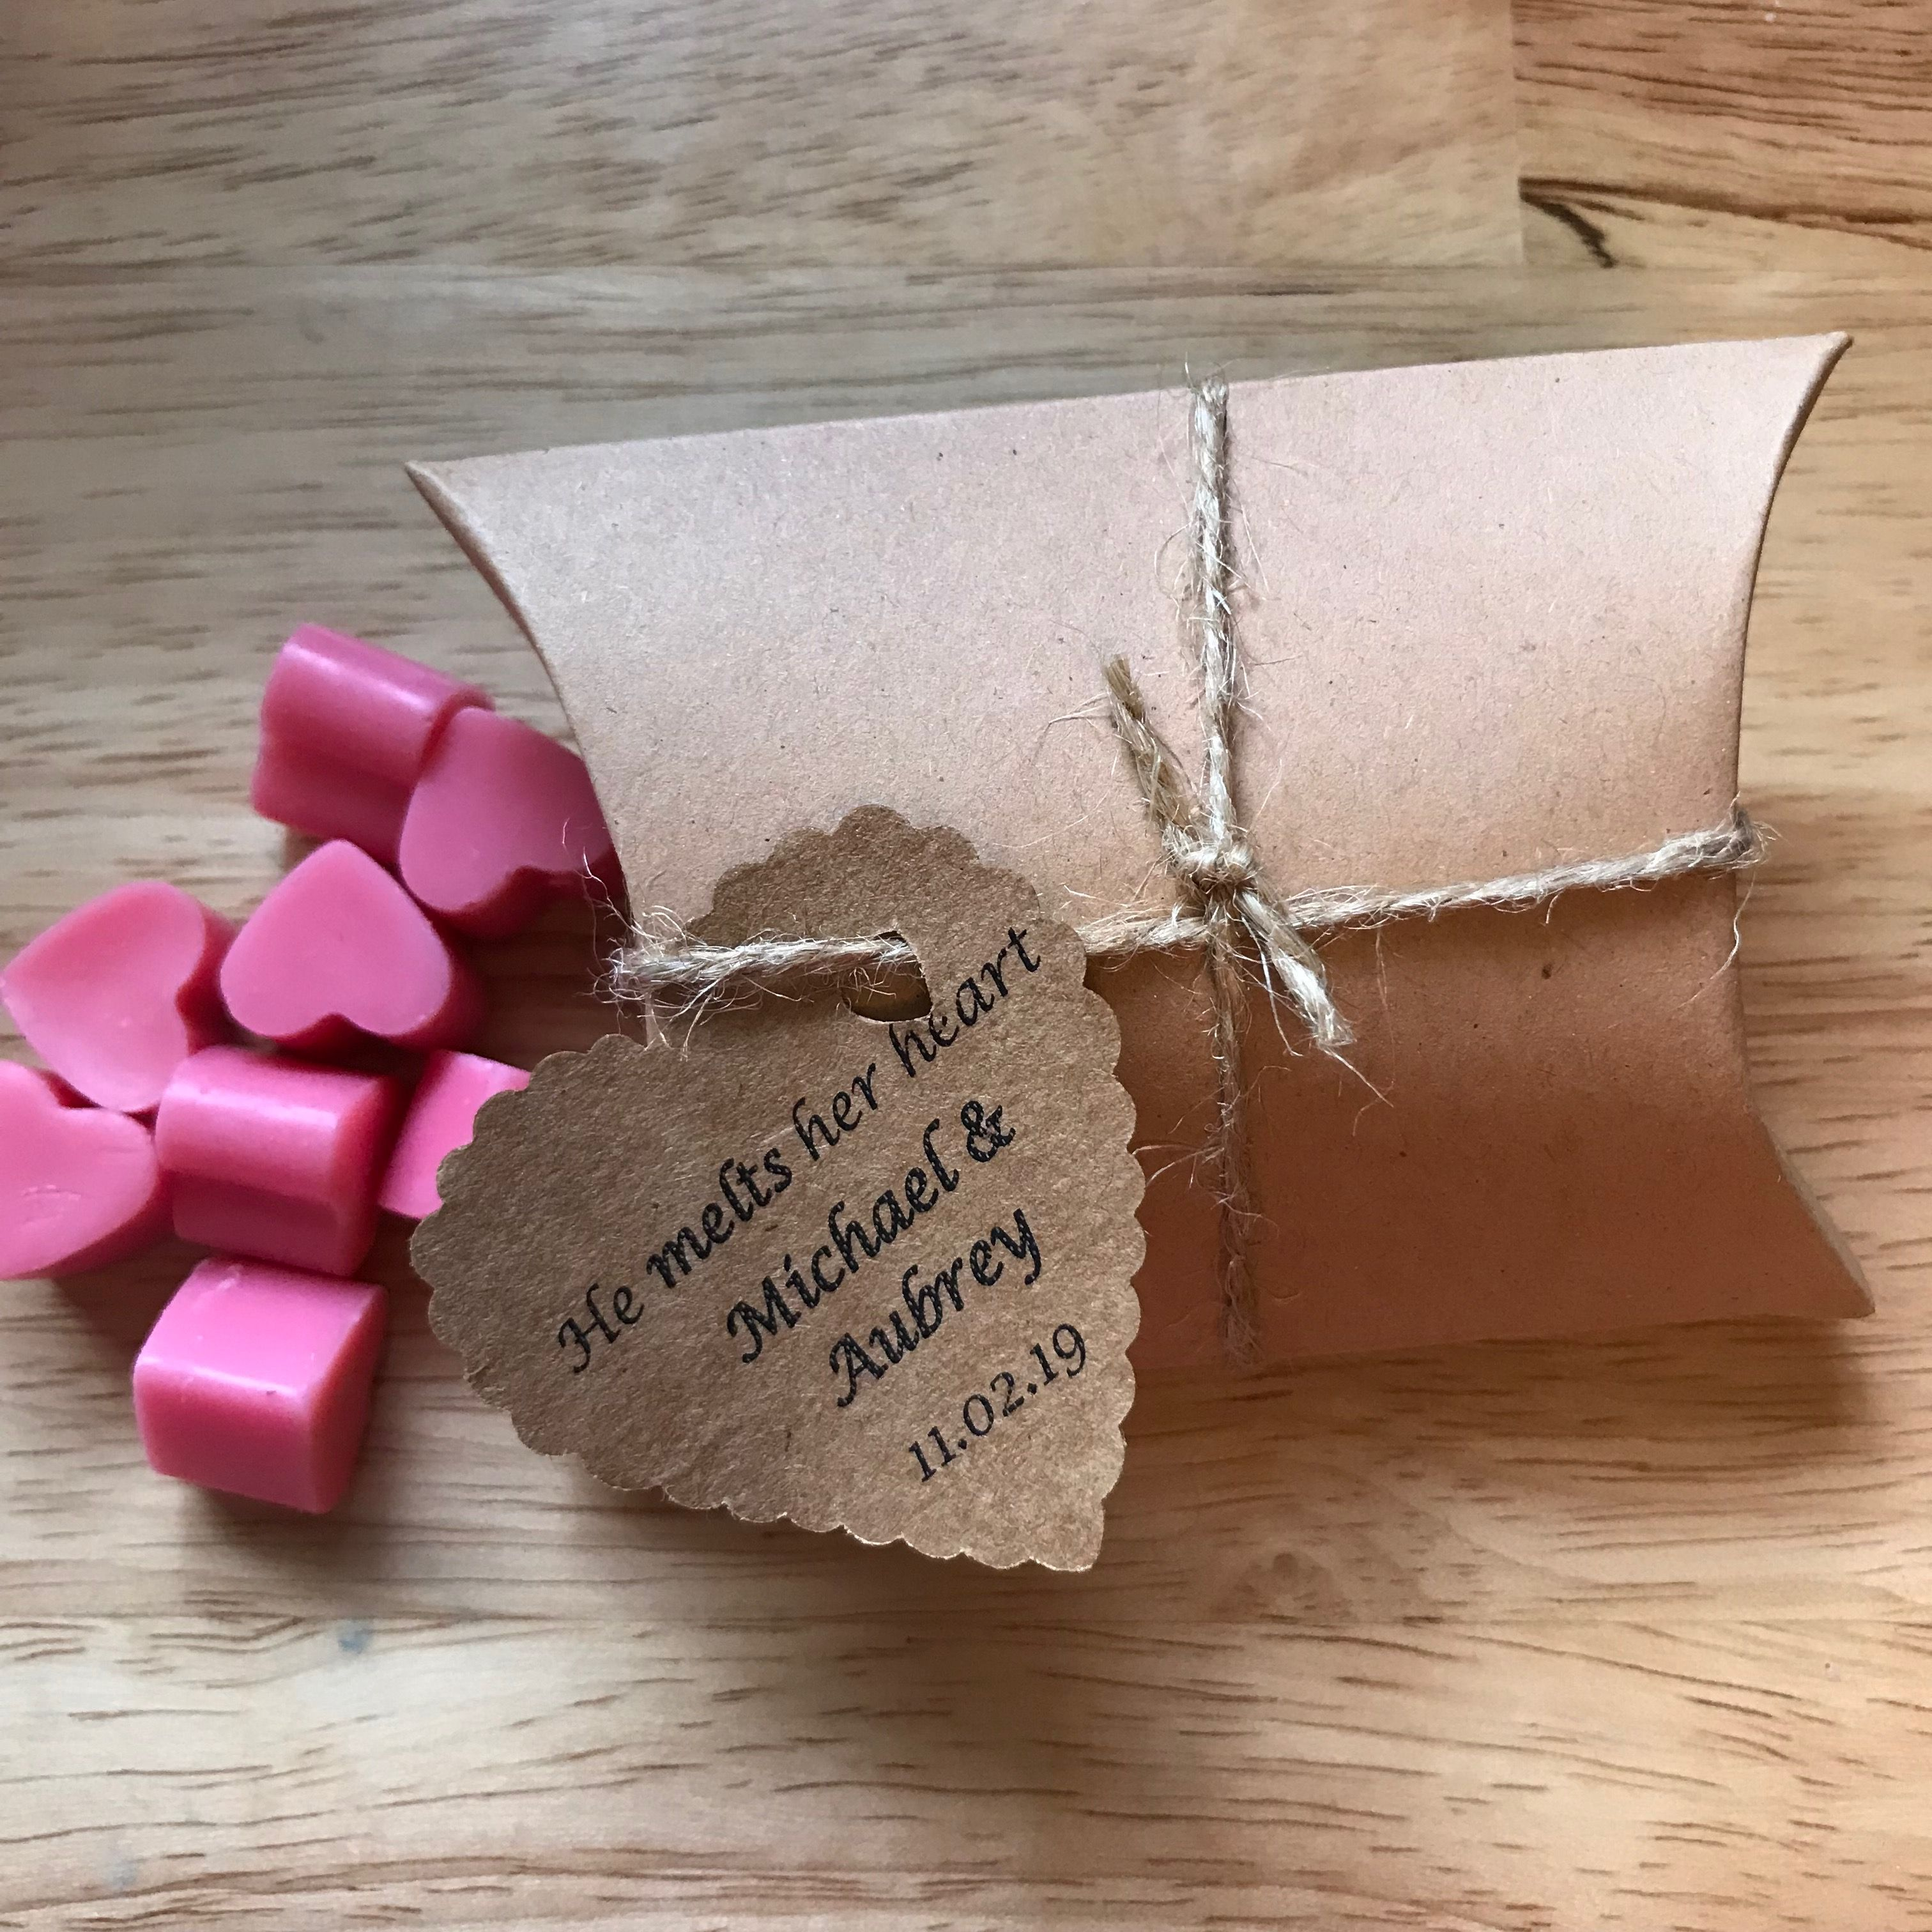 33+ Hearts and crafts natural soy wax ideas in 2021